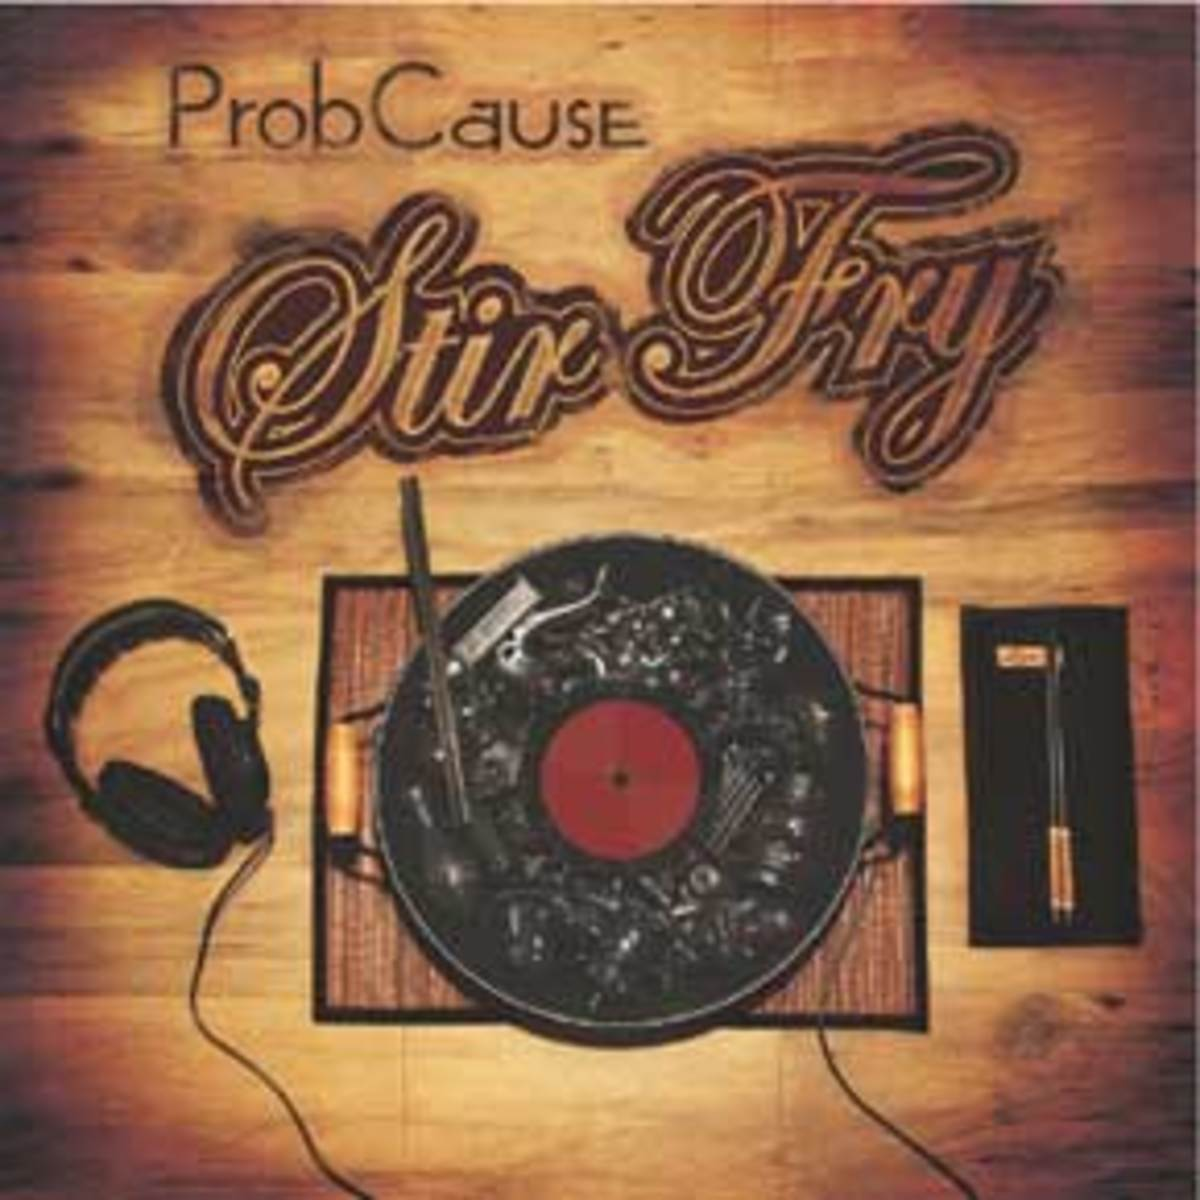 probcause-stir-fry-front.jpg